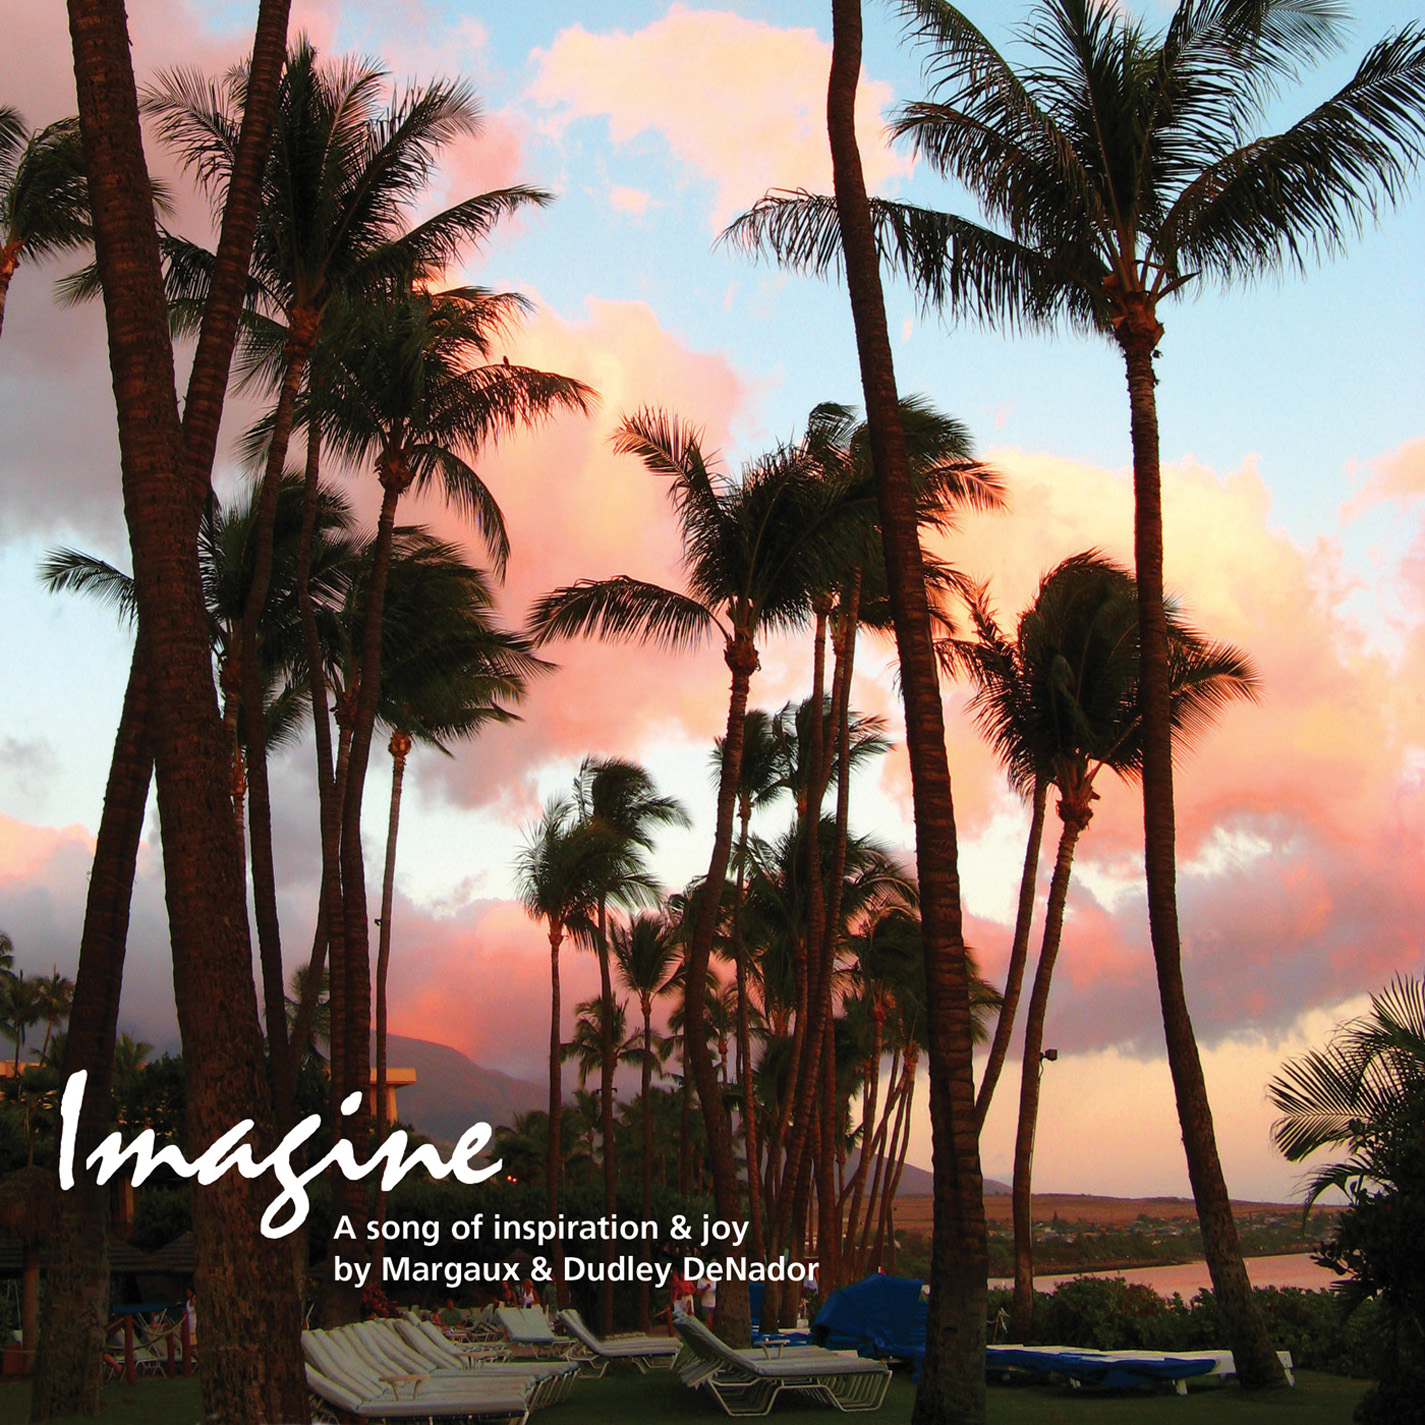 Imagine - The DeNadors